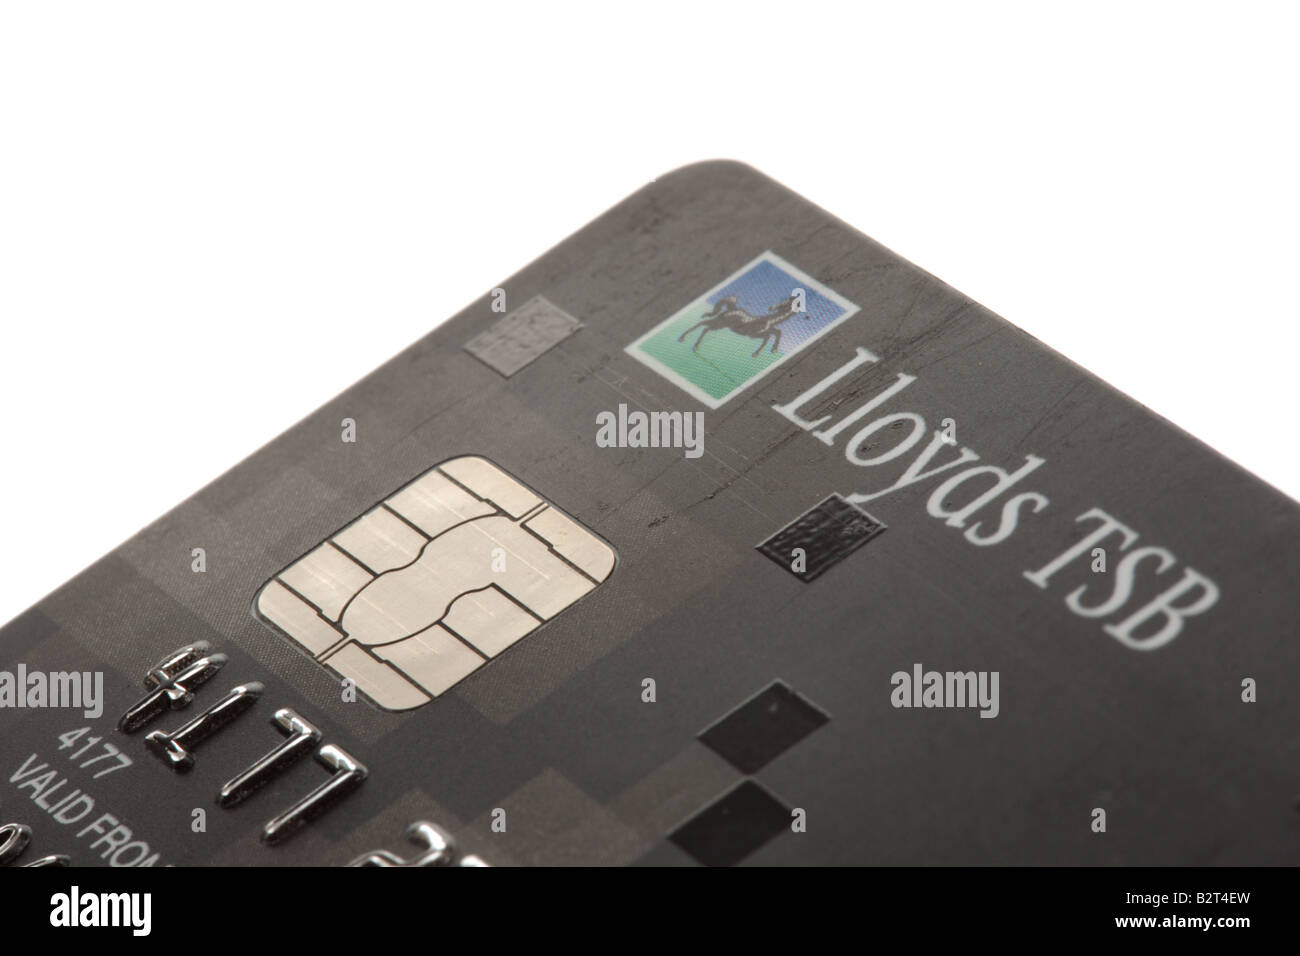 Lloyds Bank Debit Card Stock Photos & Lloyds Bank Debit Card Stock ...